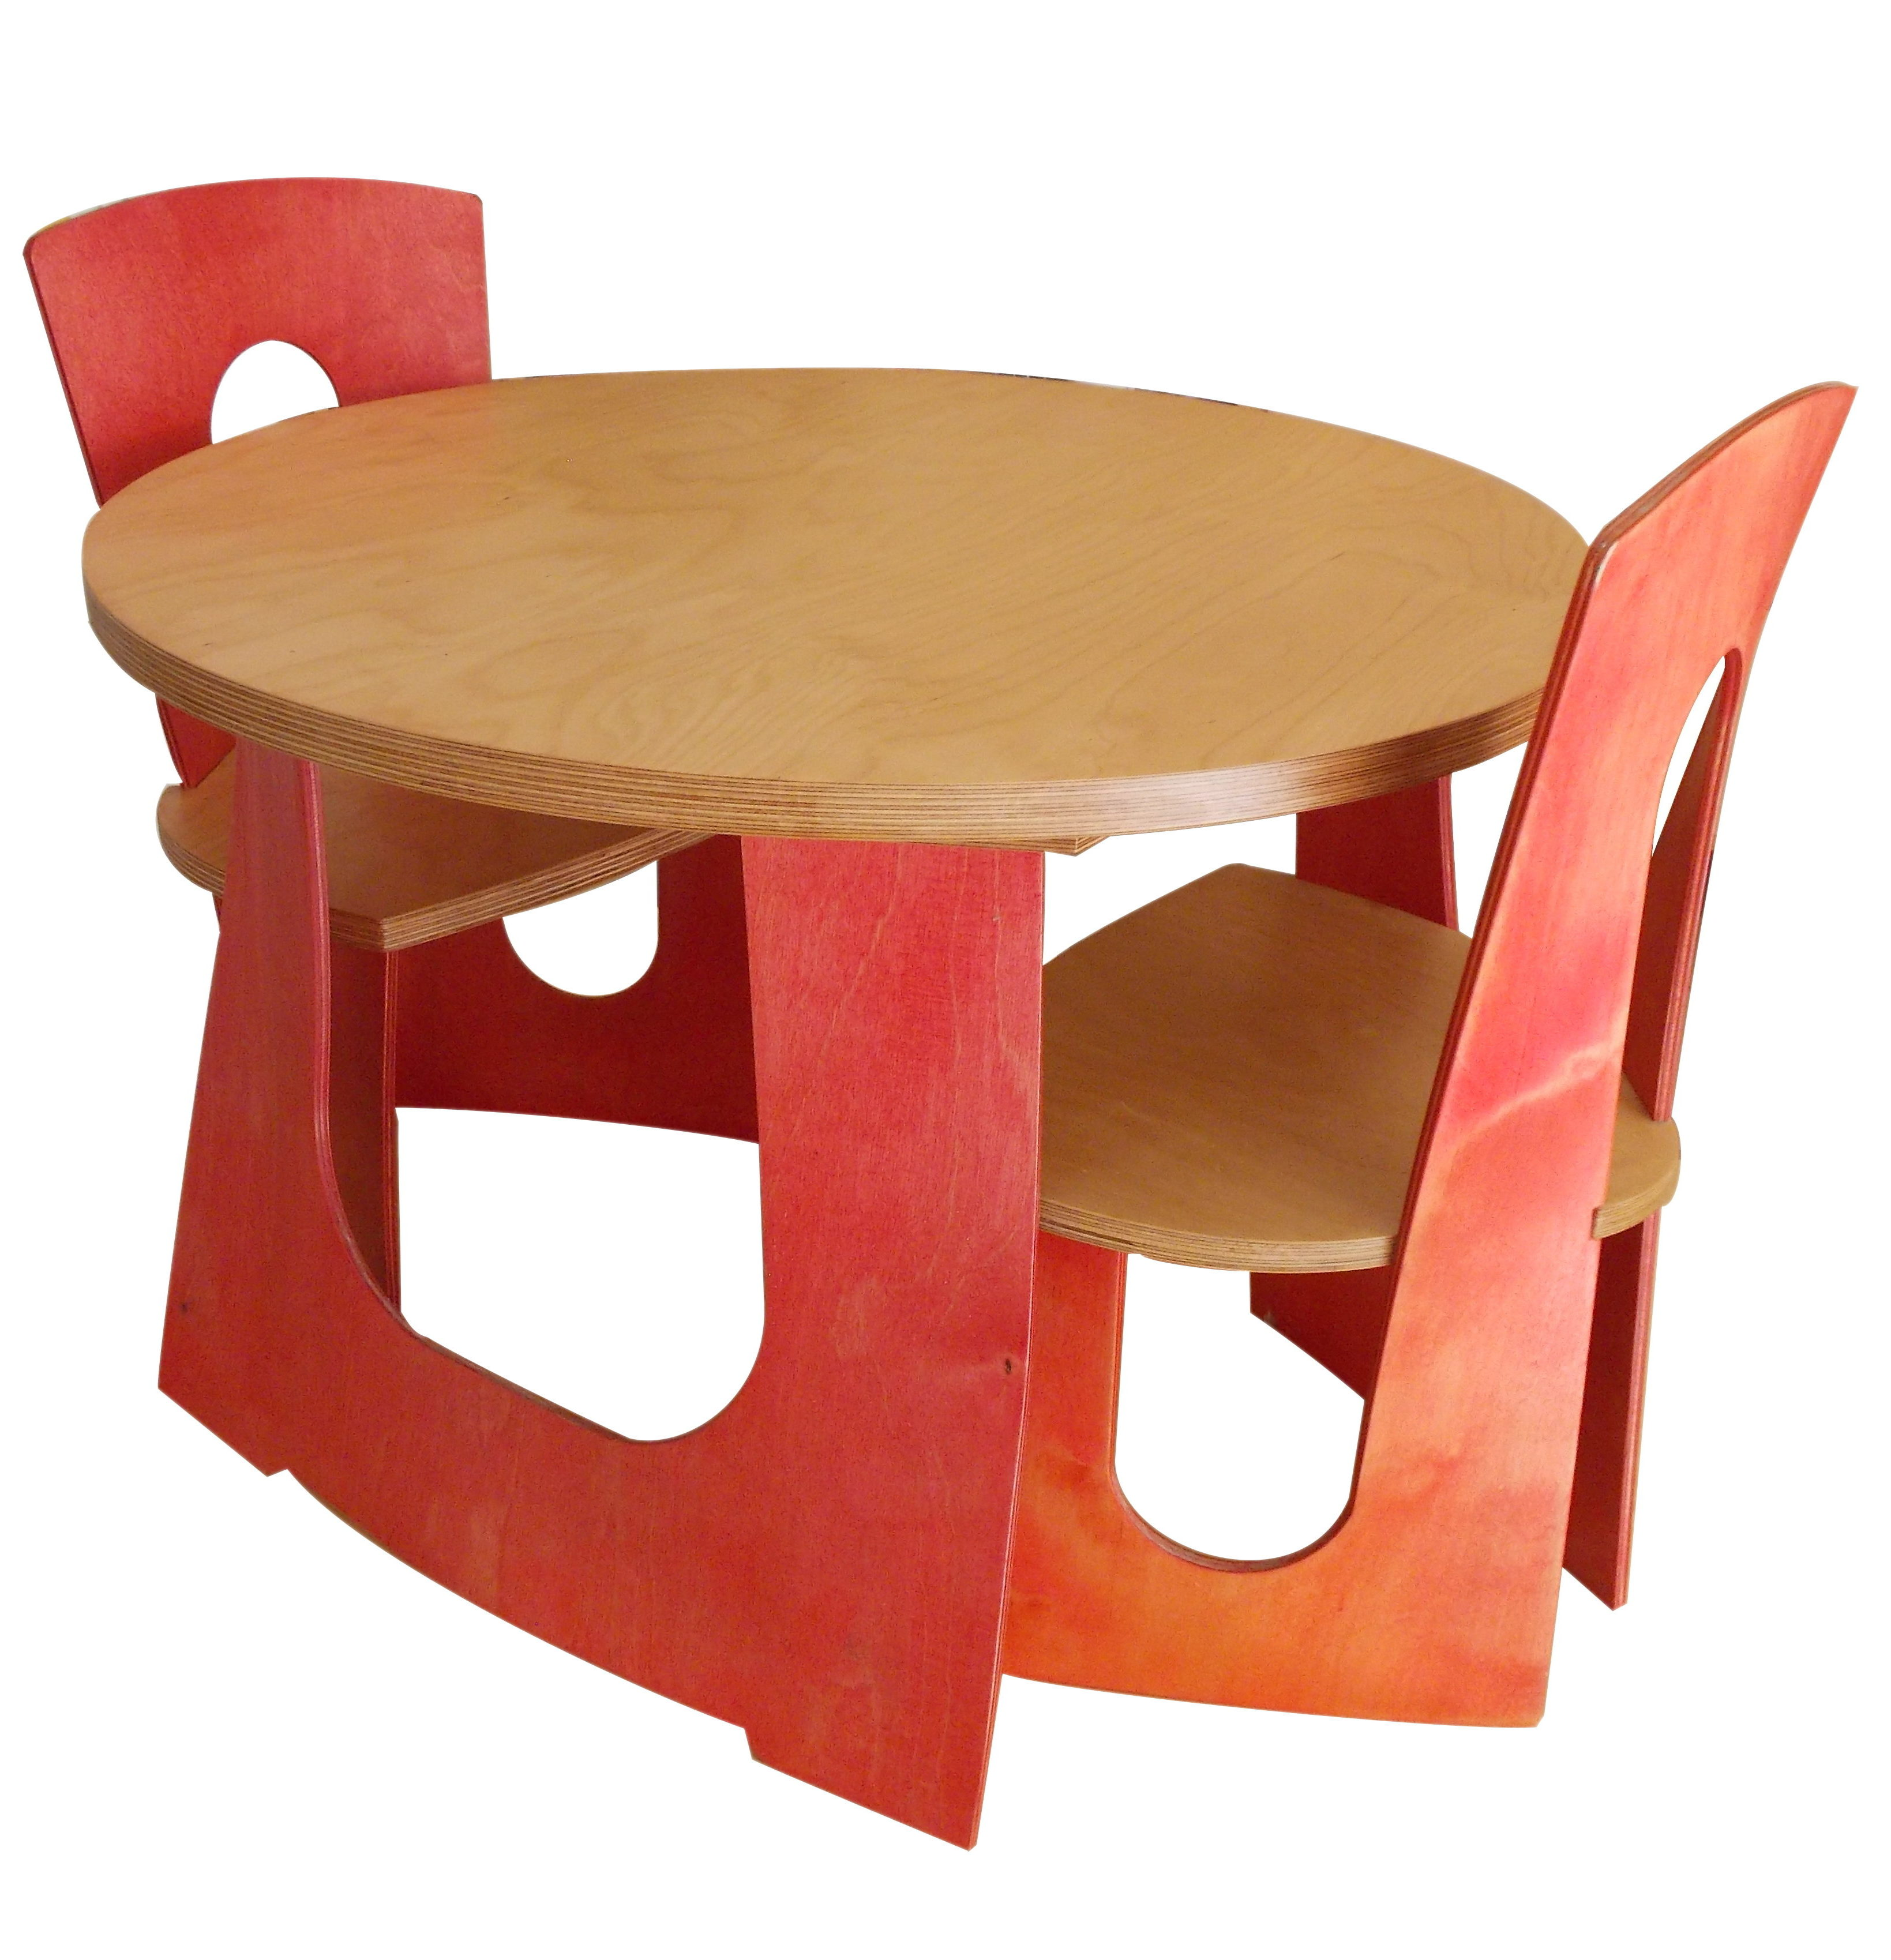 K Furniture, children's table and chairs